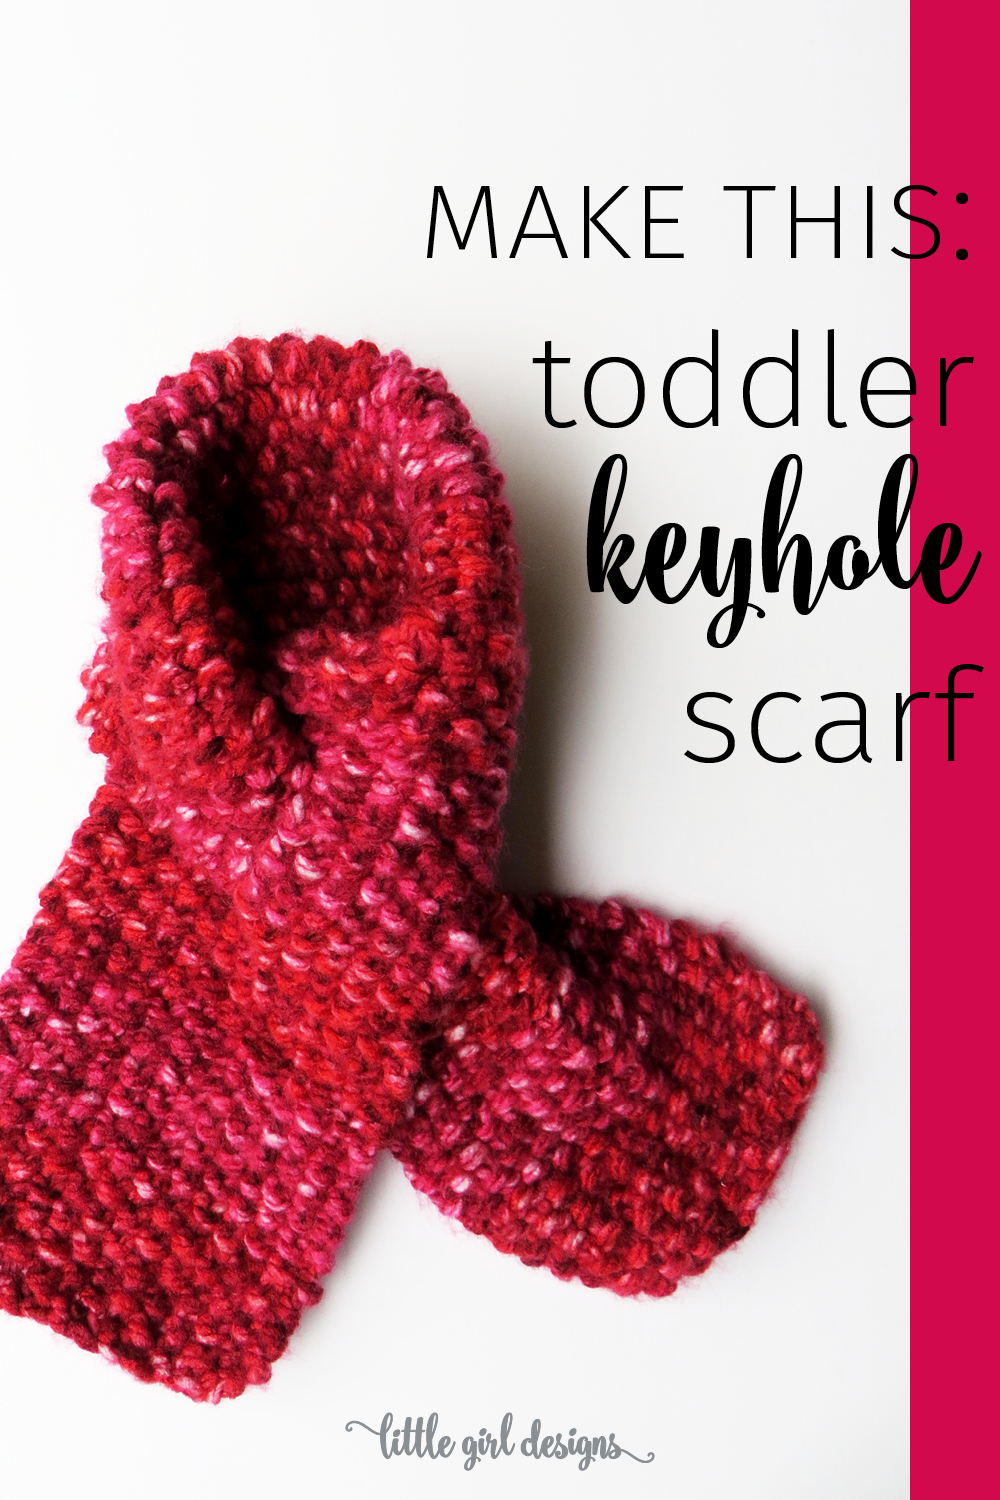 Knitting Pattern For Scarf For Toddler : Toddler Keyhole Scarf Knitting Pattern - Little Girl Designs